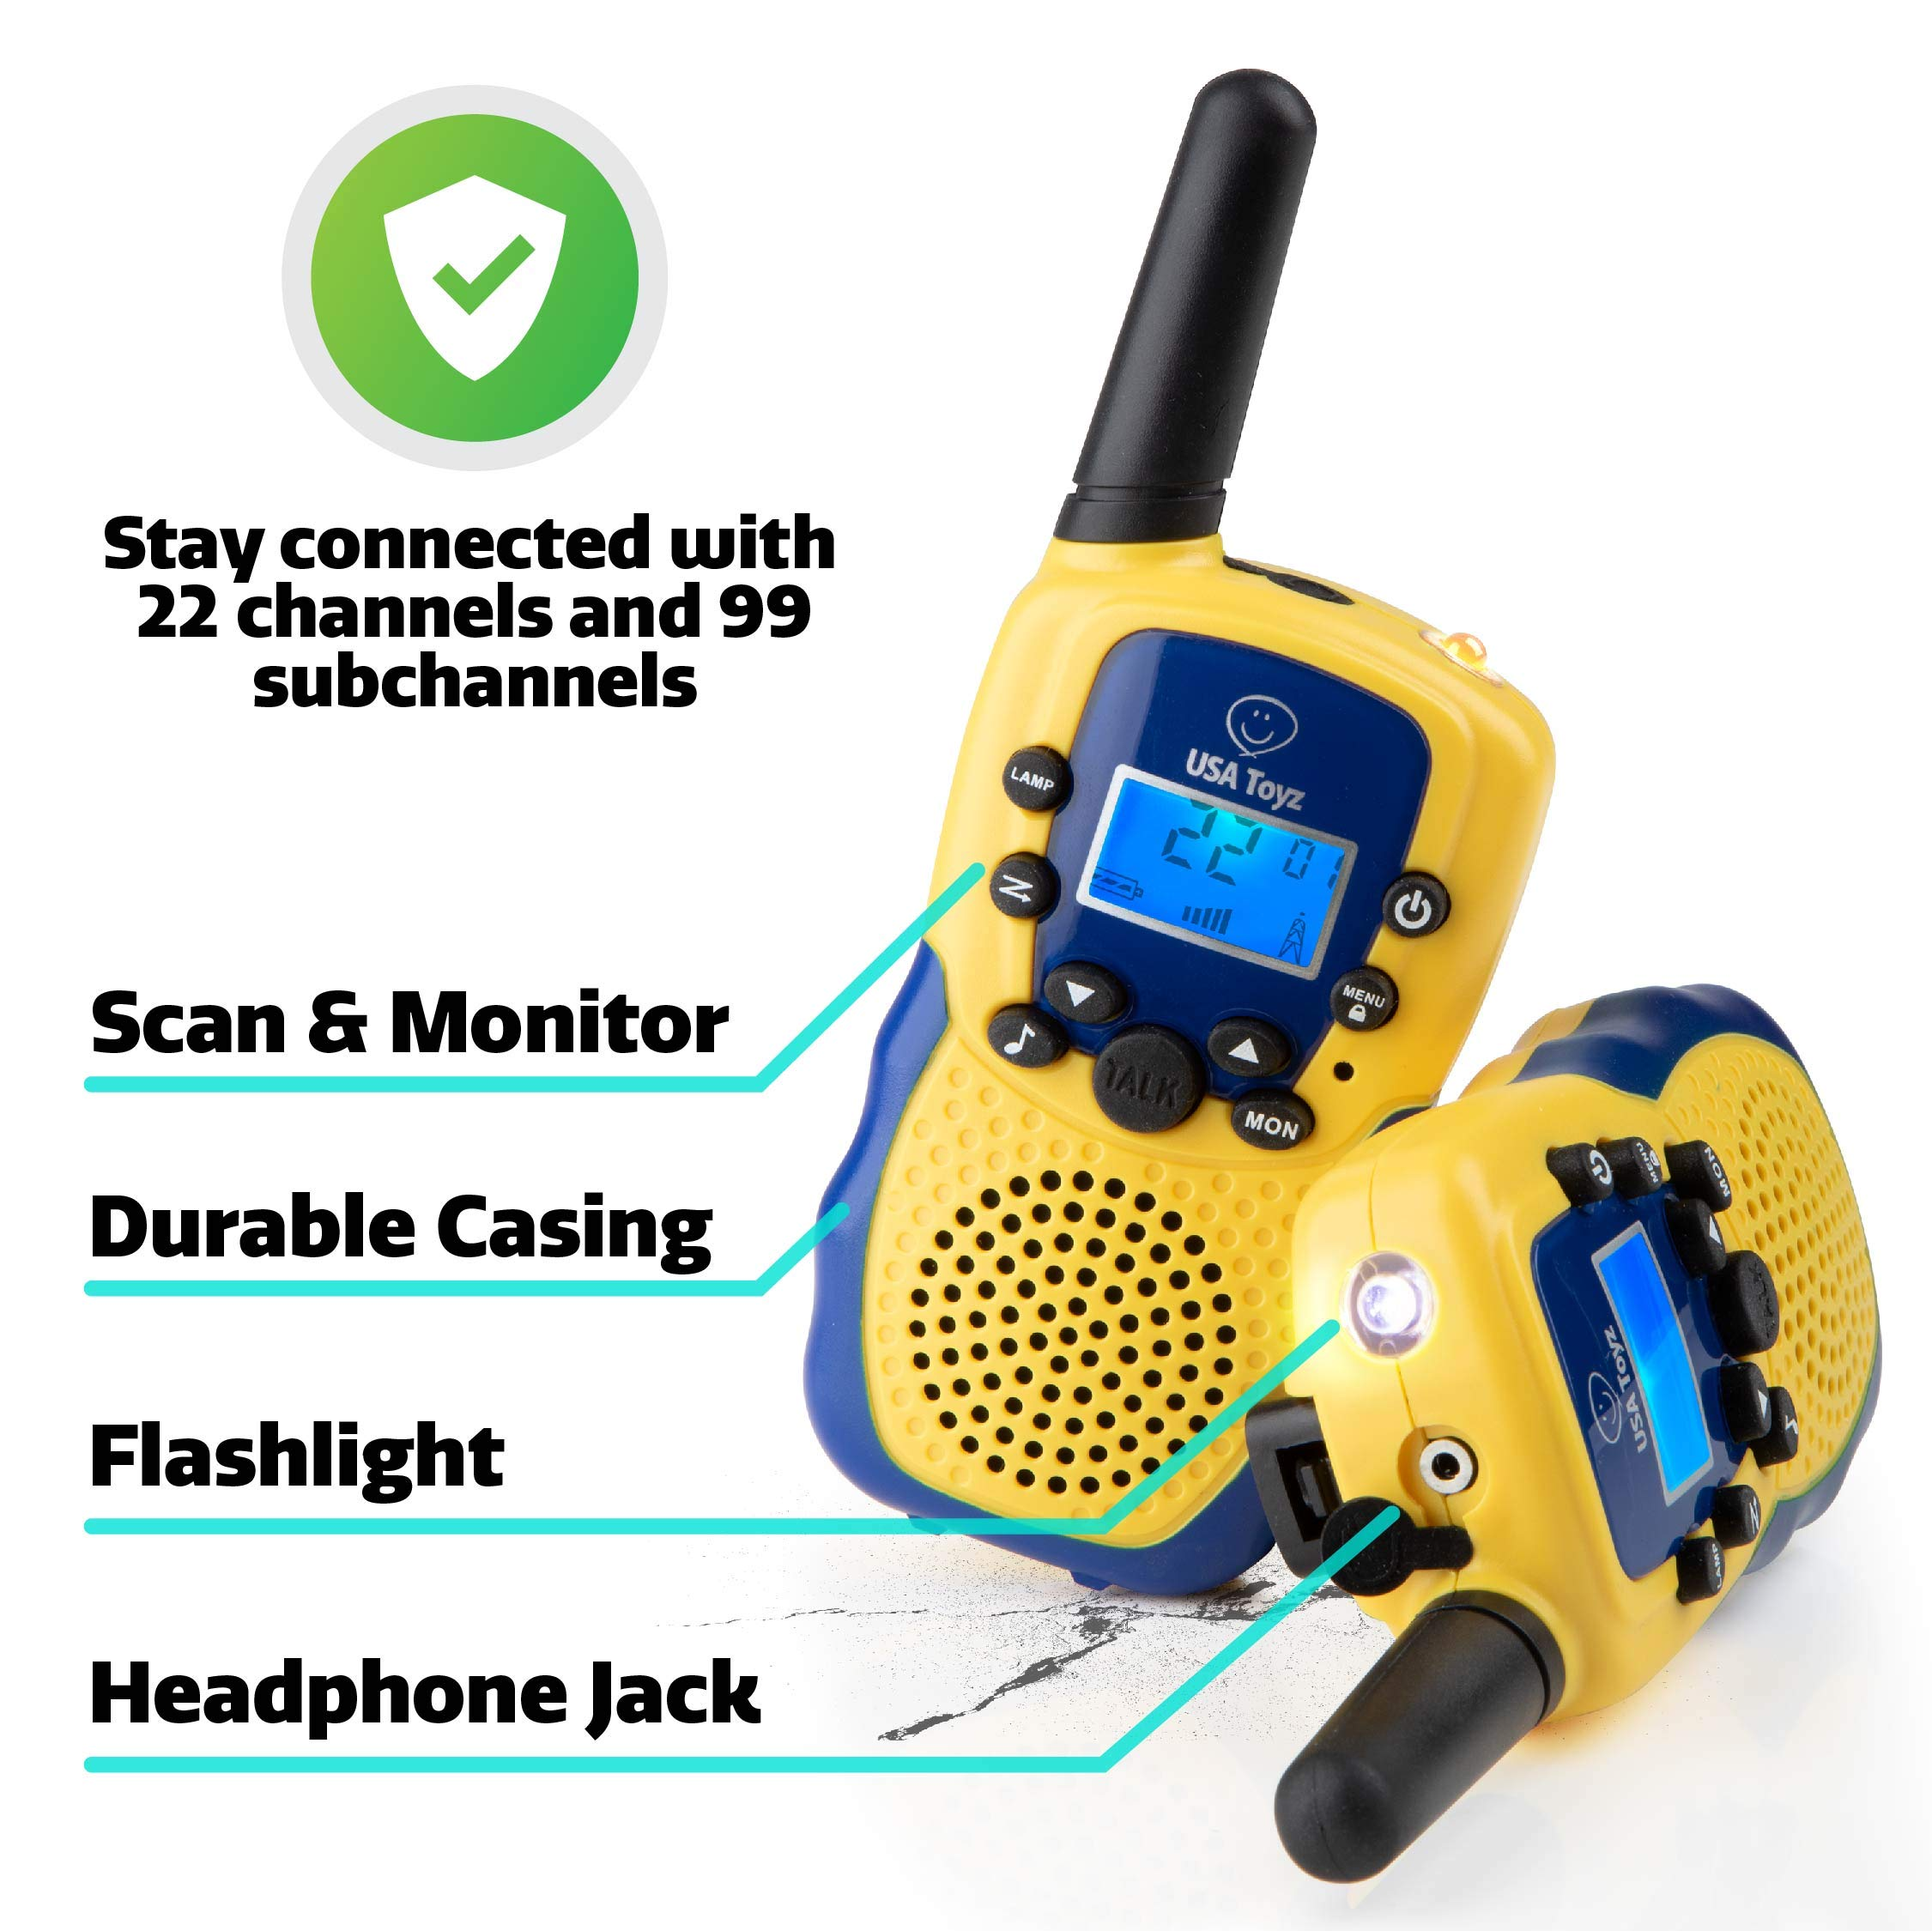 USA Toyz Kids Walkie Talkies with Binoculars - Vox Box Voice Activated Long Range Walkie Talkie Set w/ Binoculars for Kids, Outdoor Toys for Boys or Girls by USA Toyz (Image #5)